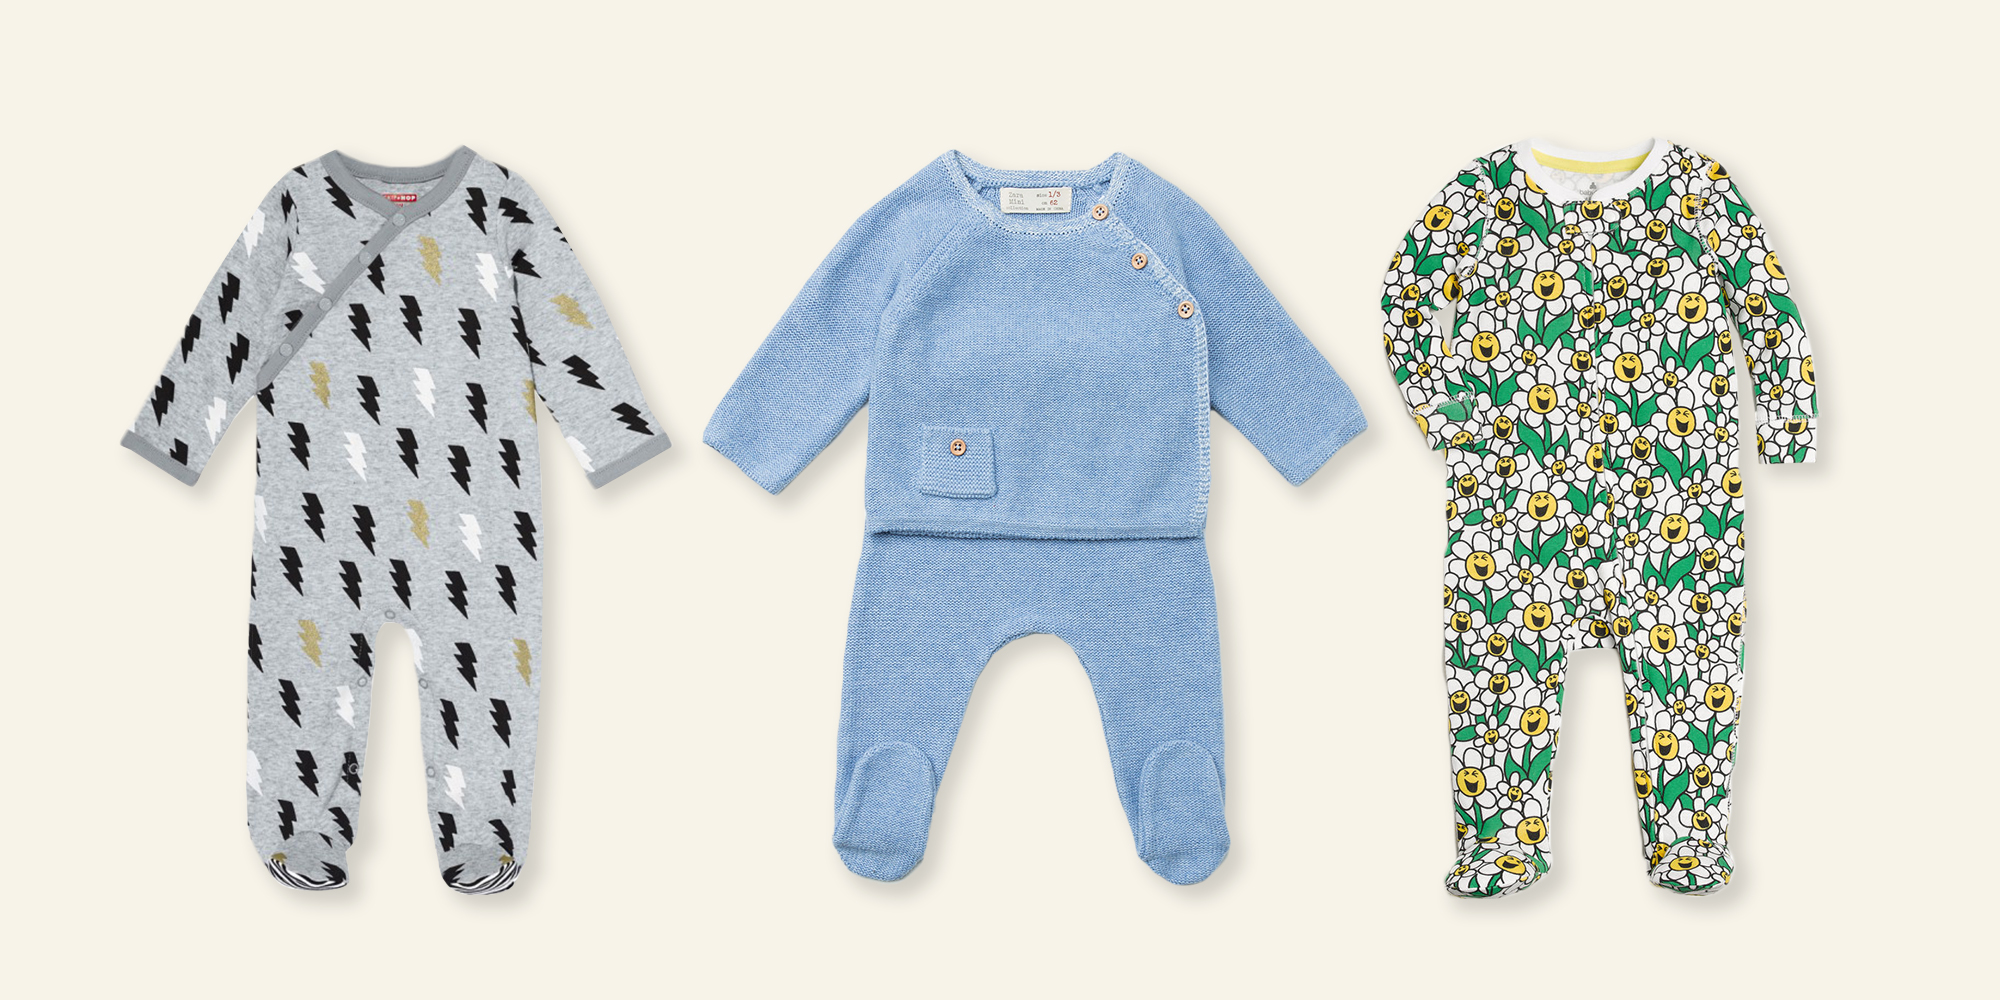 10 Best Layette Sets For Baby In 2018 Adorable Newborn Baby Clothes